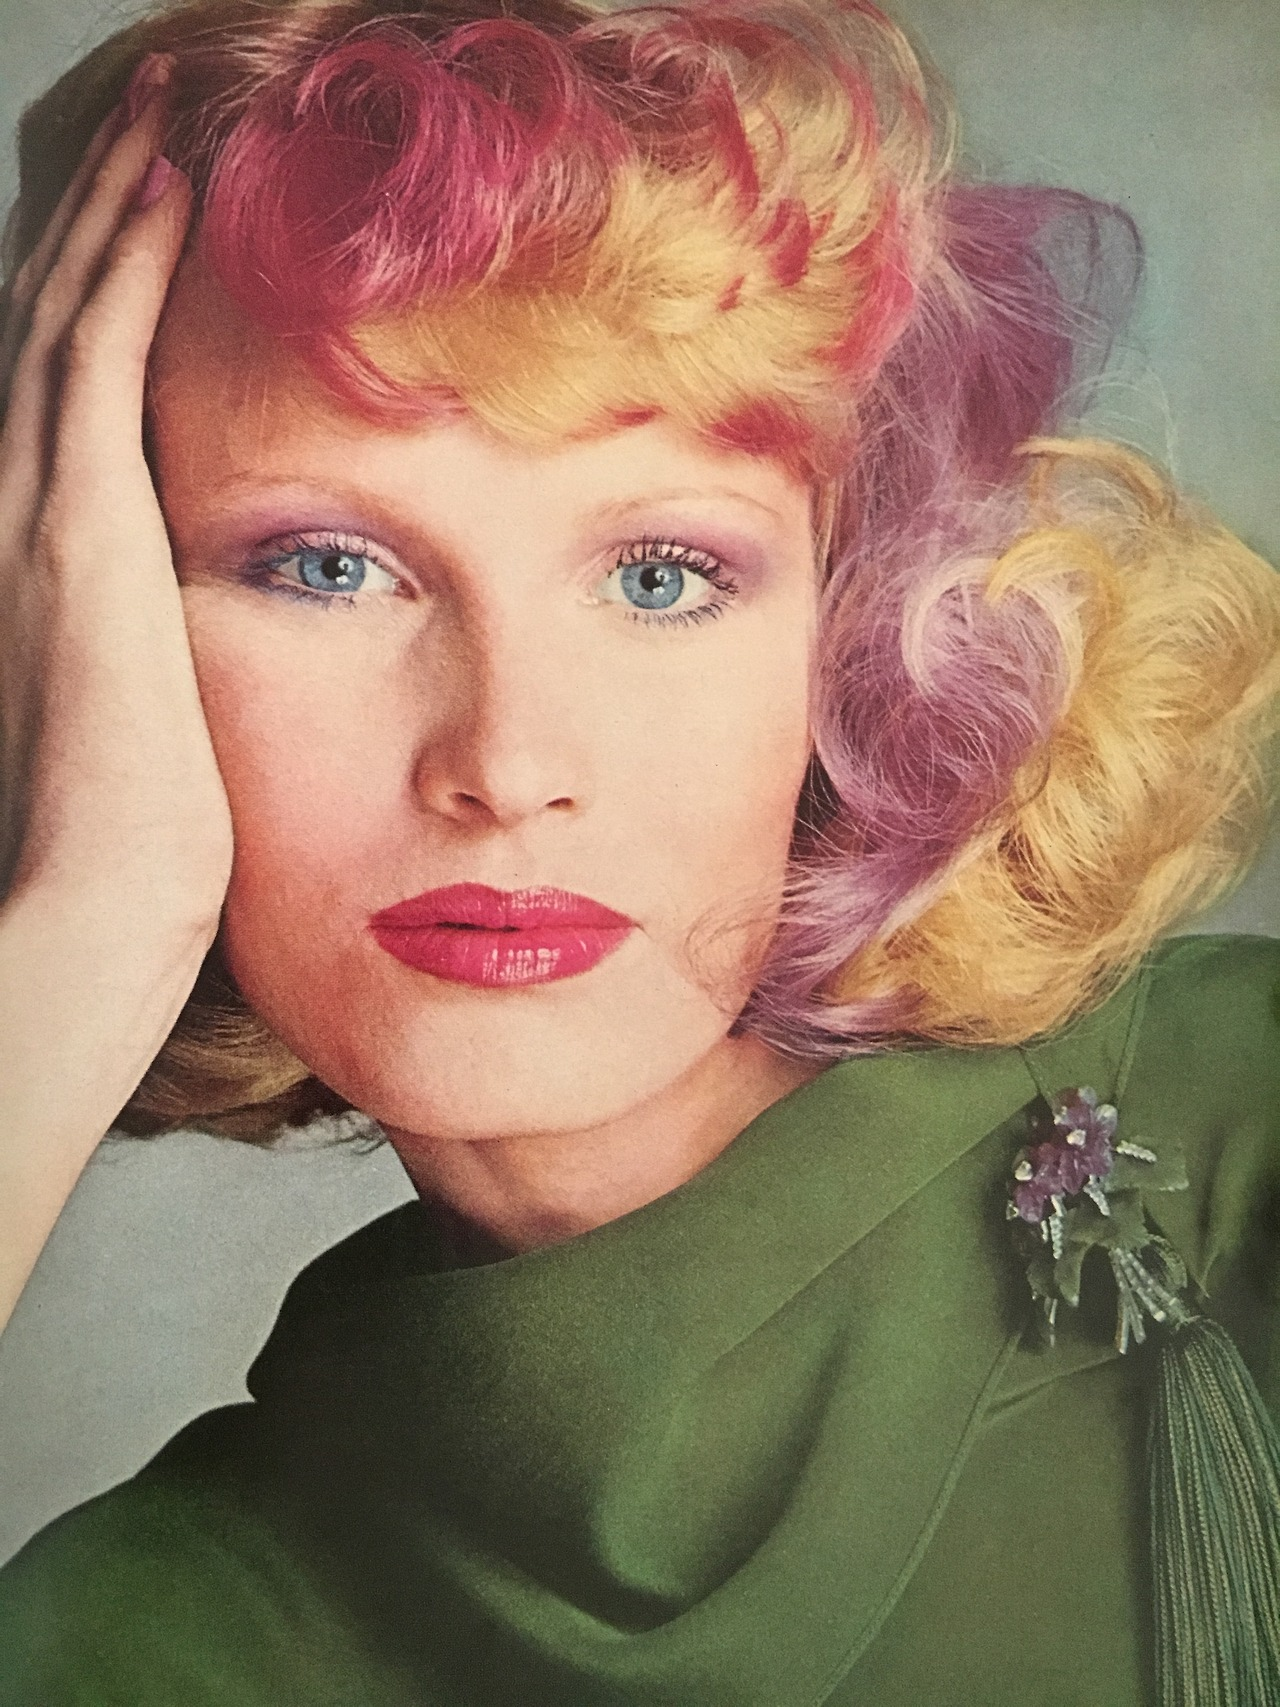 """Rainbow hair in the '70s. Photo by Richard Avedon. Vogue. July 1974.  The article that went along with this image was to illustrate the types of highlights that were newly available, so I am sure this is a wig that was dyed, but it is quite stunning!  Thank you  @summericecreamsundae  for the feedback! The request was for more'60s and'70s posts, as well as more content from the'20s. I will admit, that the 1920s is the decade with the least representation in my collection, so I will post what I have, and I am always on the prowl for more from that era to add. Also, I'll be sure to keep the'60s and'70s content coming (that's one of my favorite eras, too!).  Quick tip: At the homepage, I've created a """"Decades & Episodes"""" link, where you can access your favorite decade or check out my podcasts with one click!"""